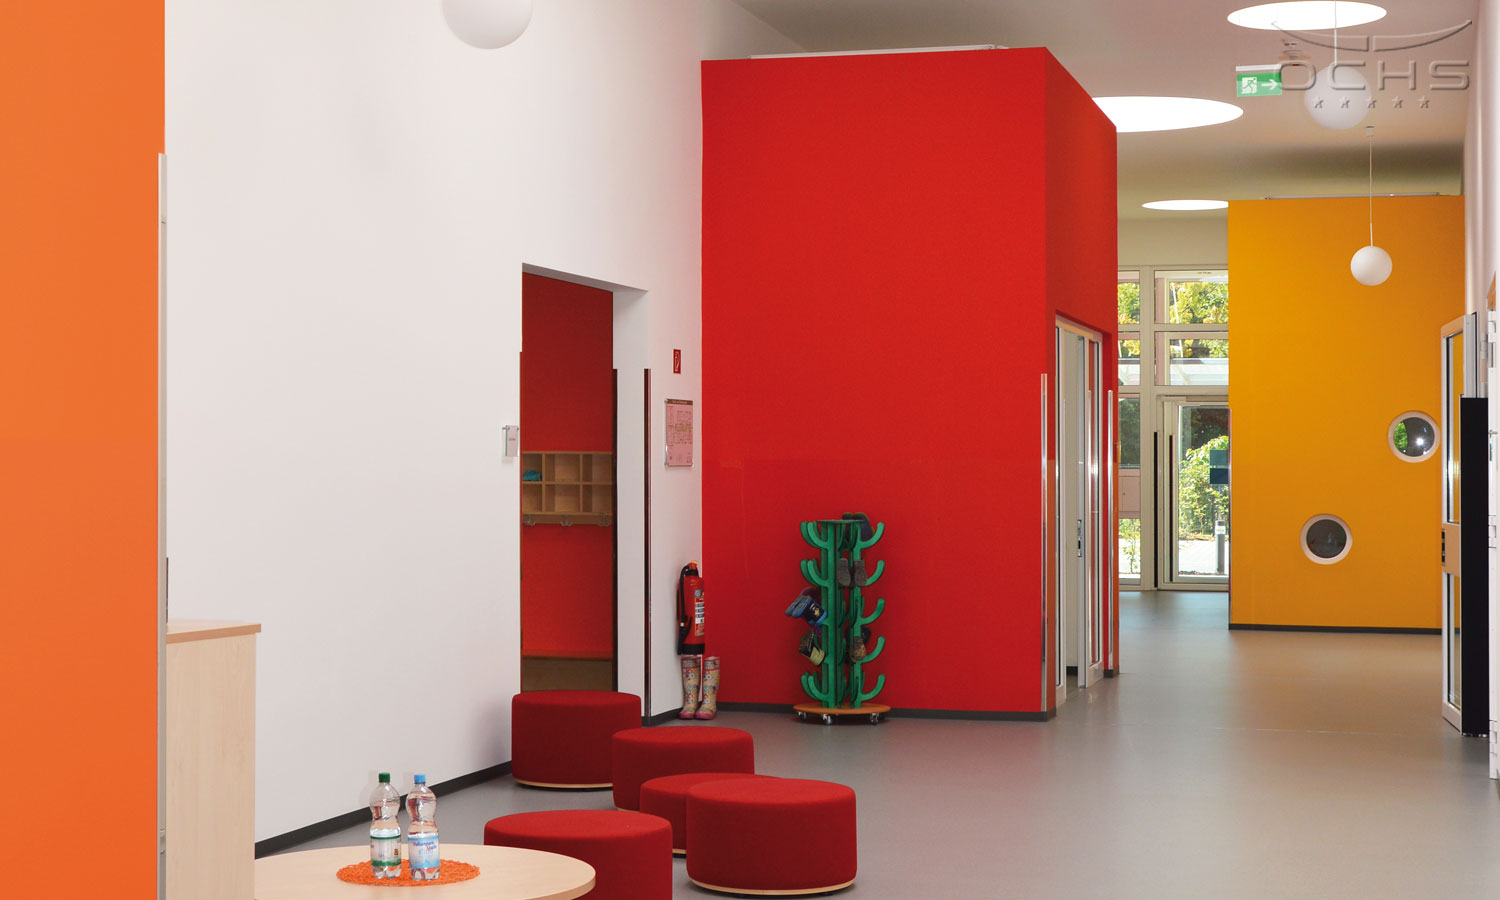 Company day-care centre in Leverkusen